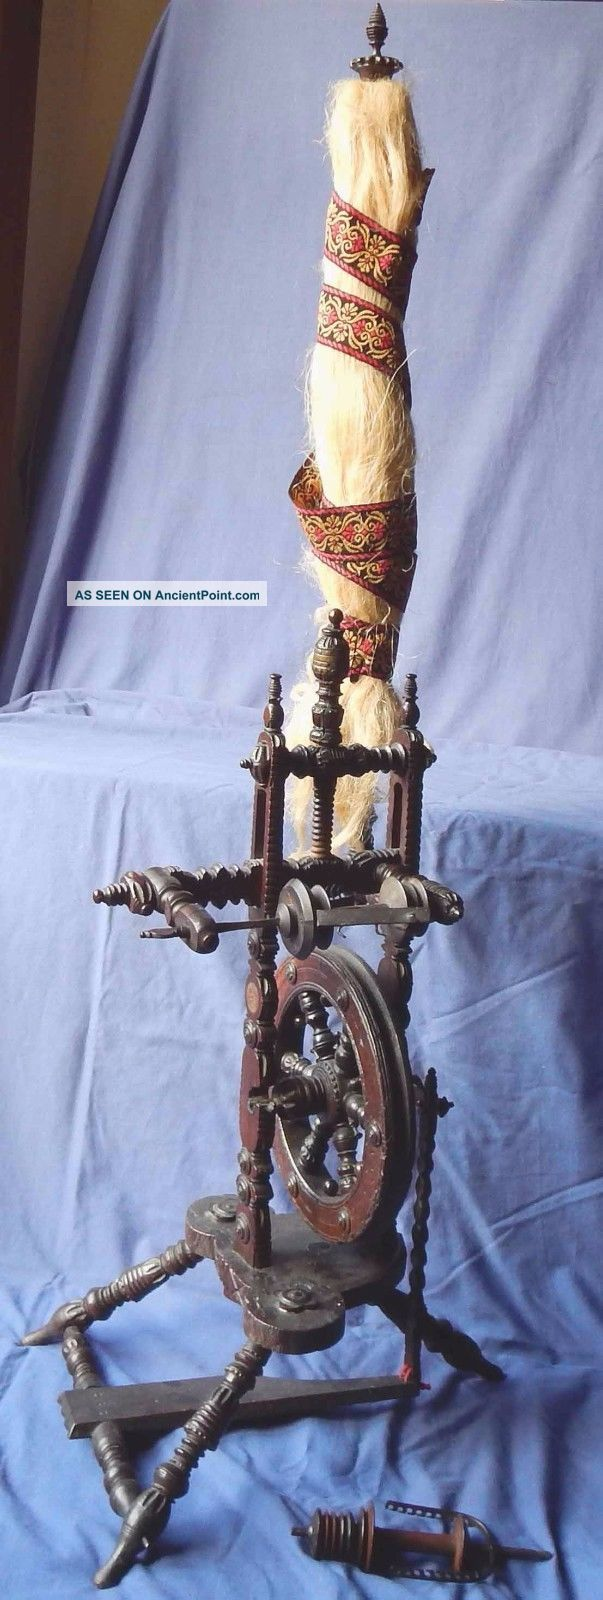 Exceptional & Complete 19th Century German Spinning Wheel & Distaff,  Circa 1875 Other Antique Sewing photo